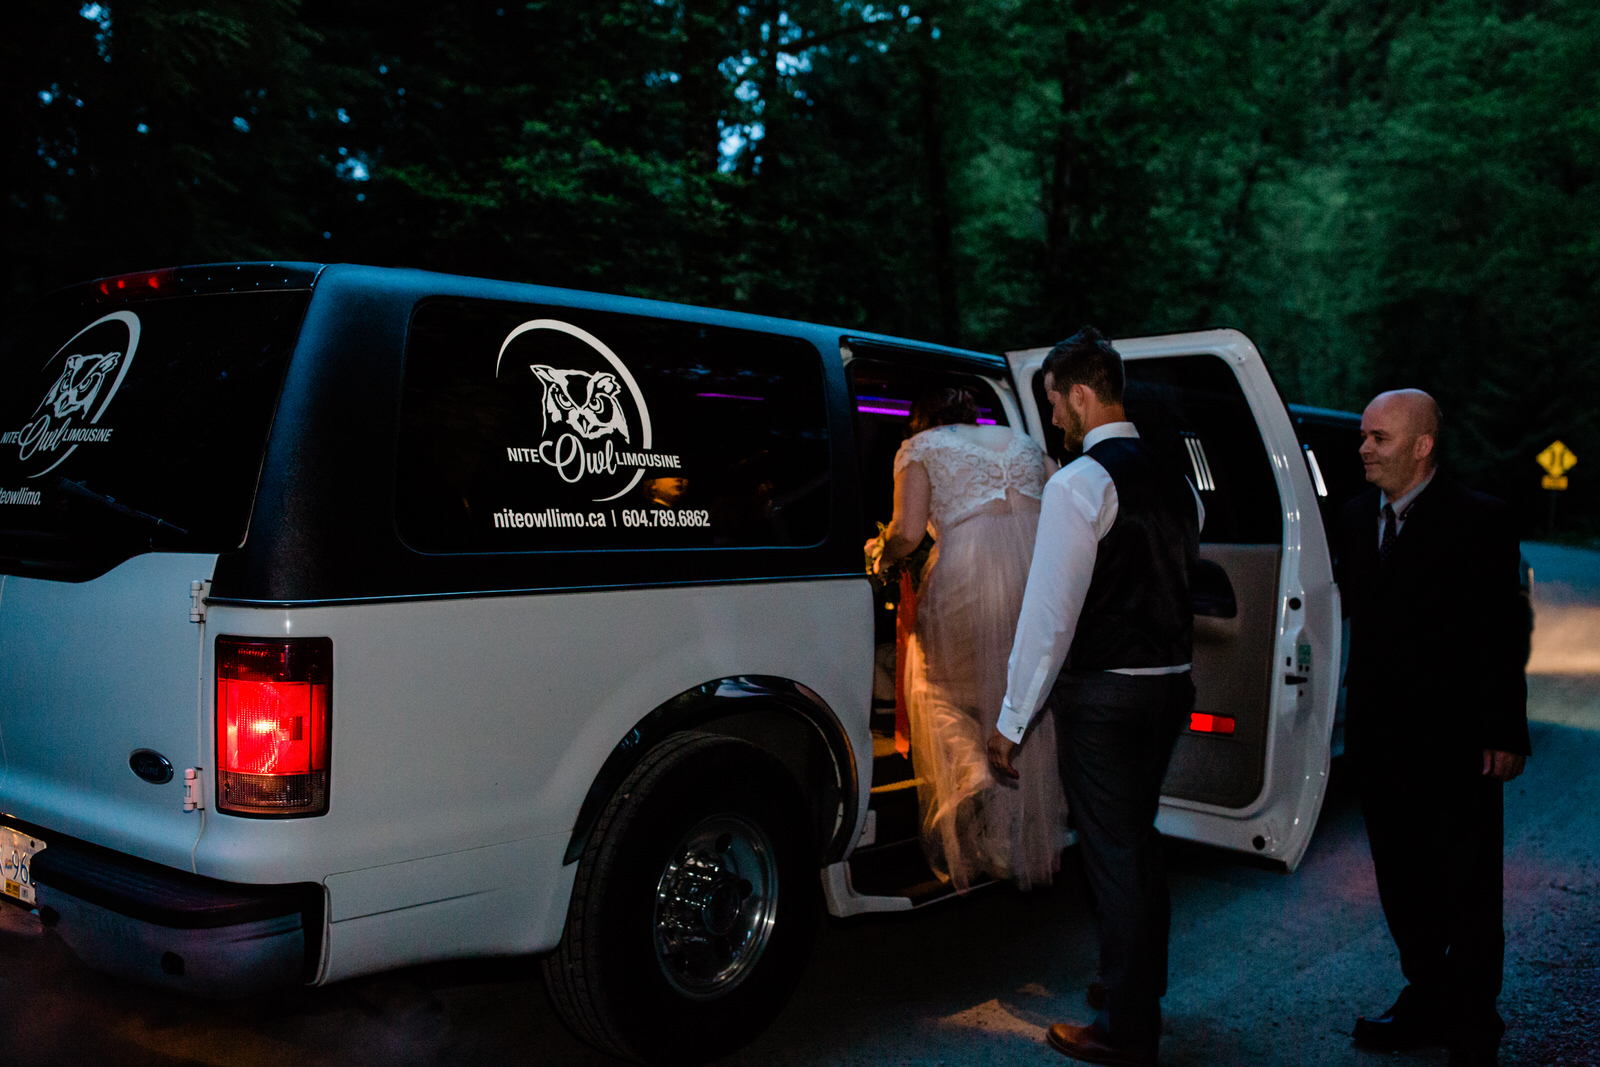 bride & groom in a limousine